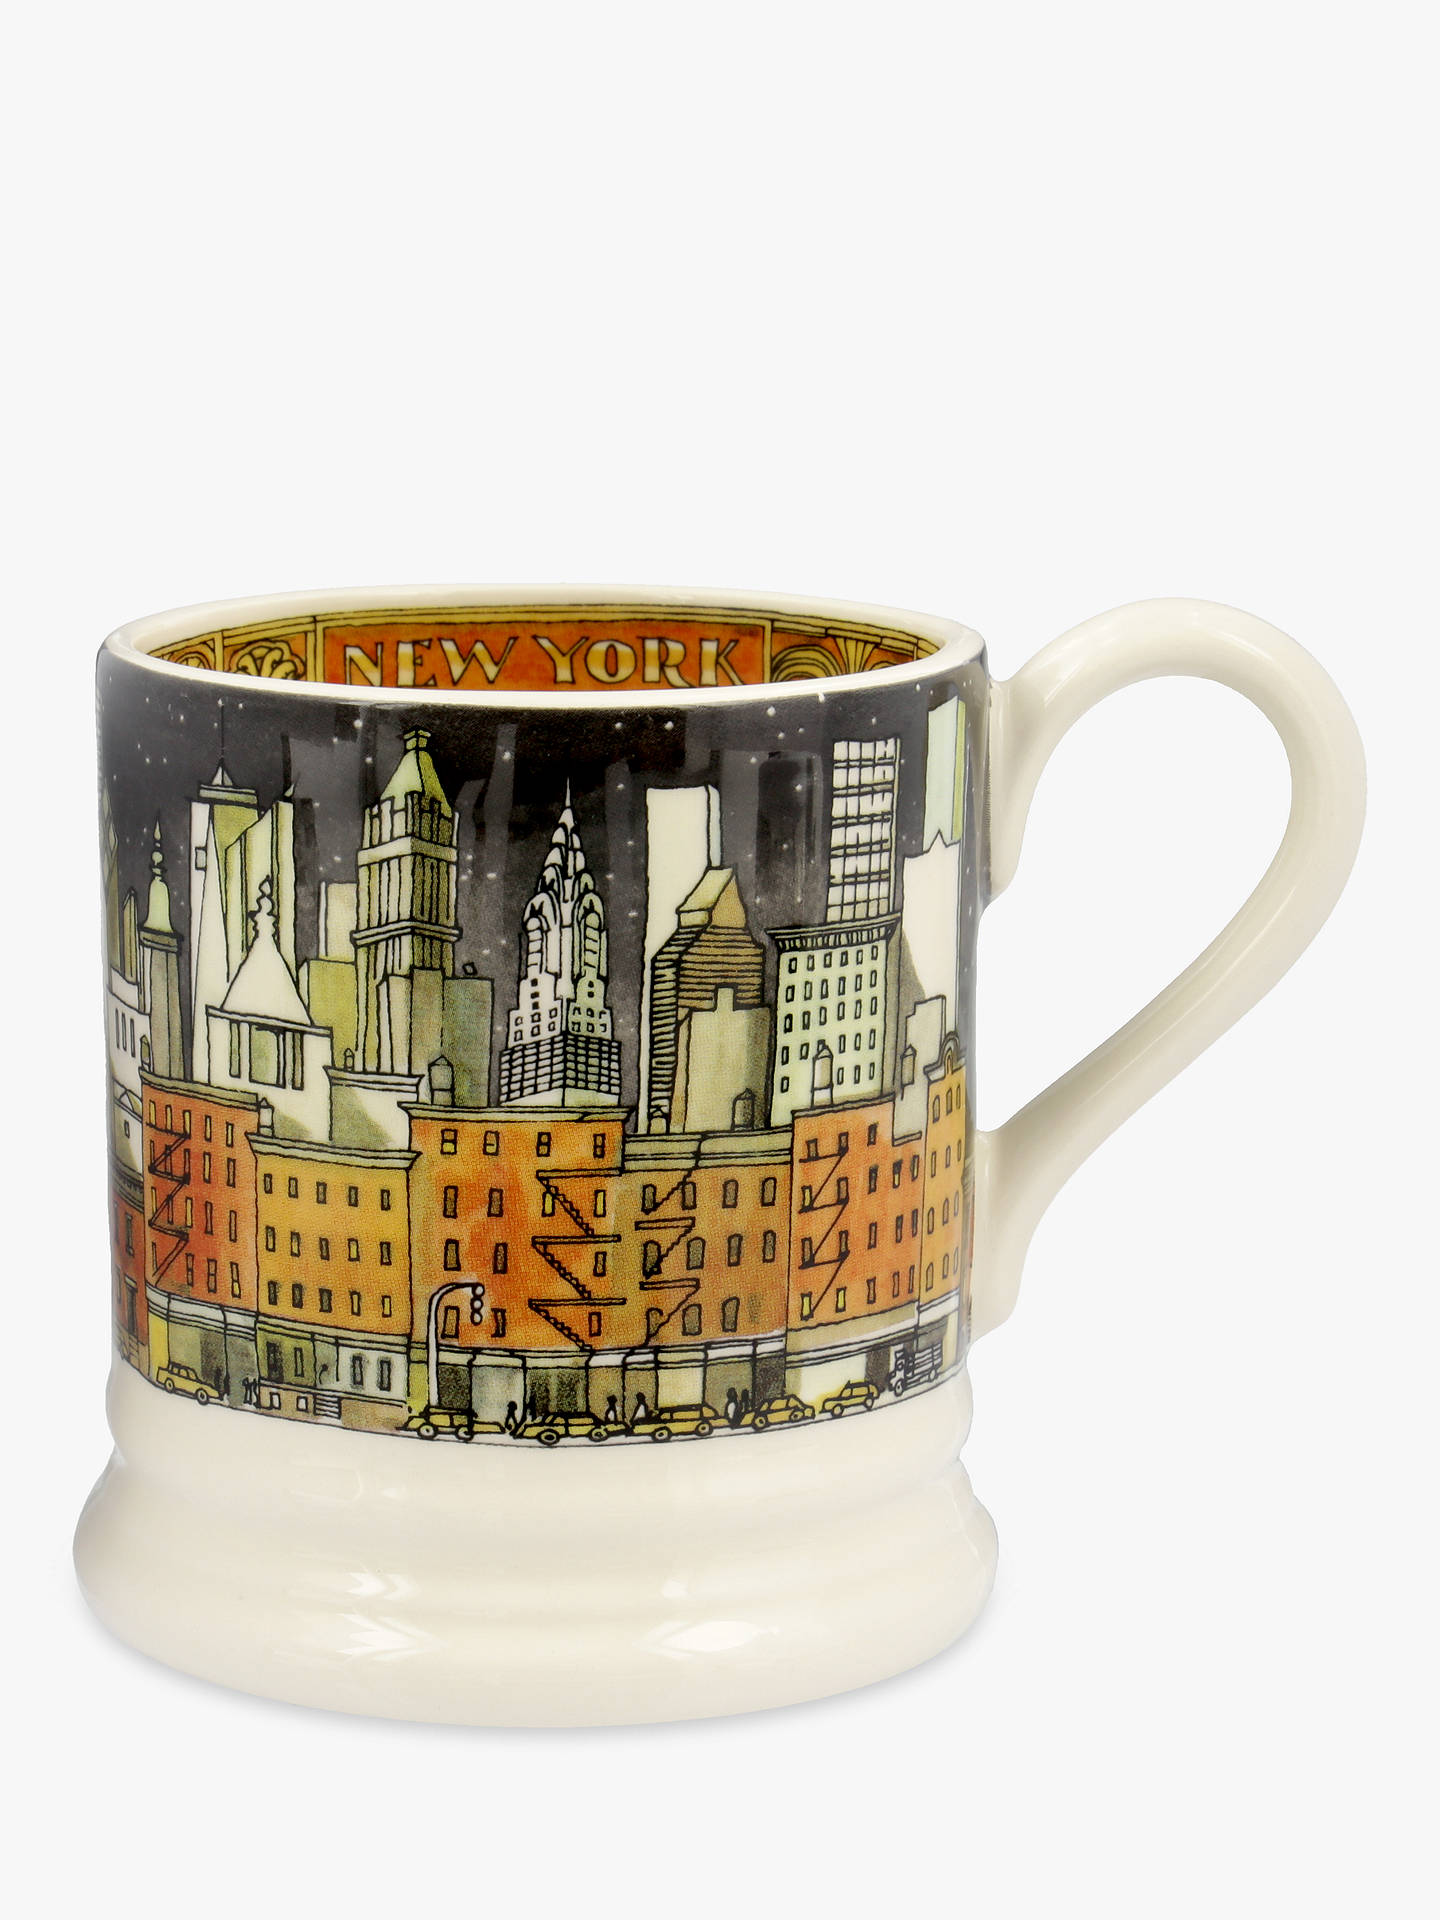 4de162eb043 Emma Bridgewater New York Half Pint Mug, 284ml, White/Multi